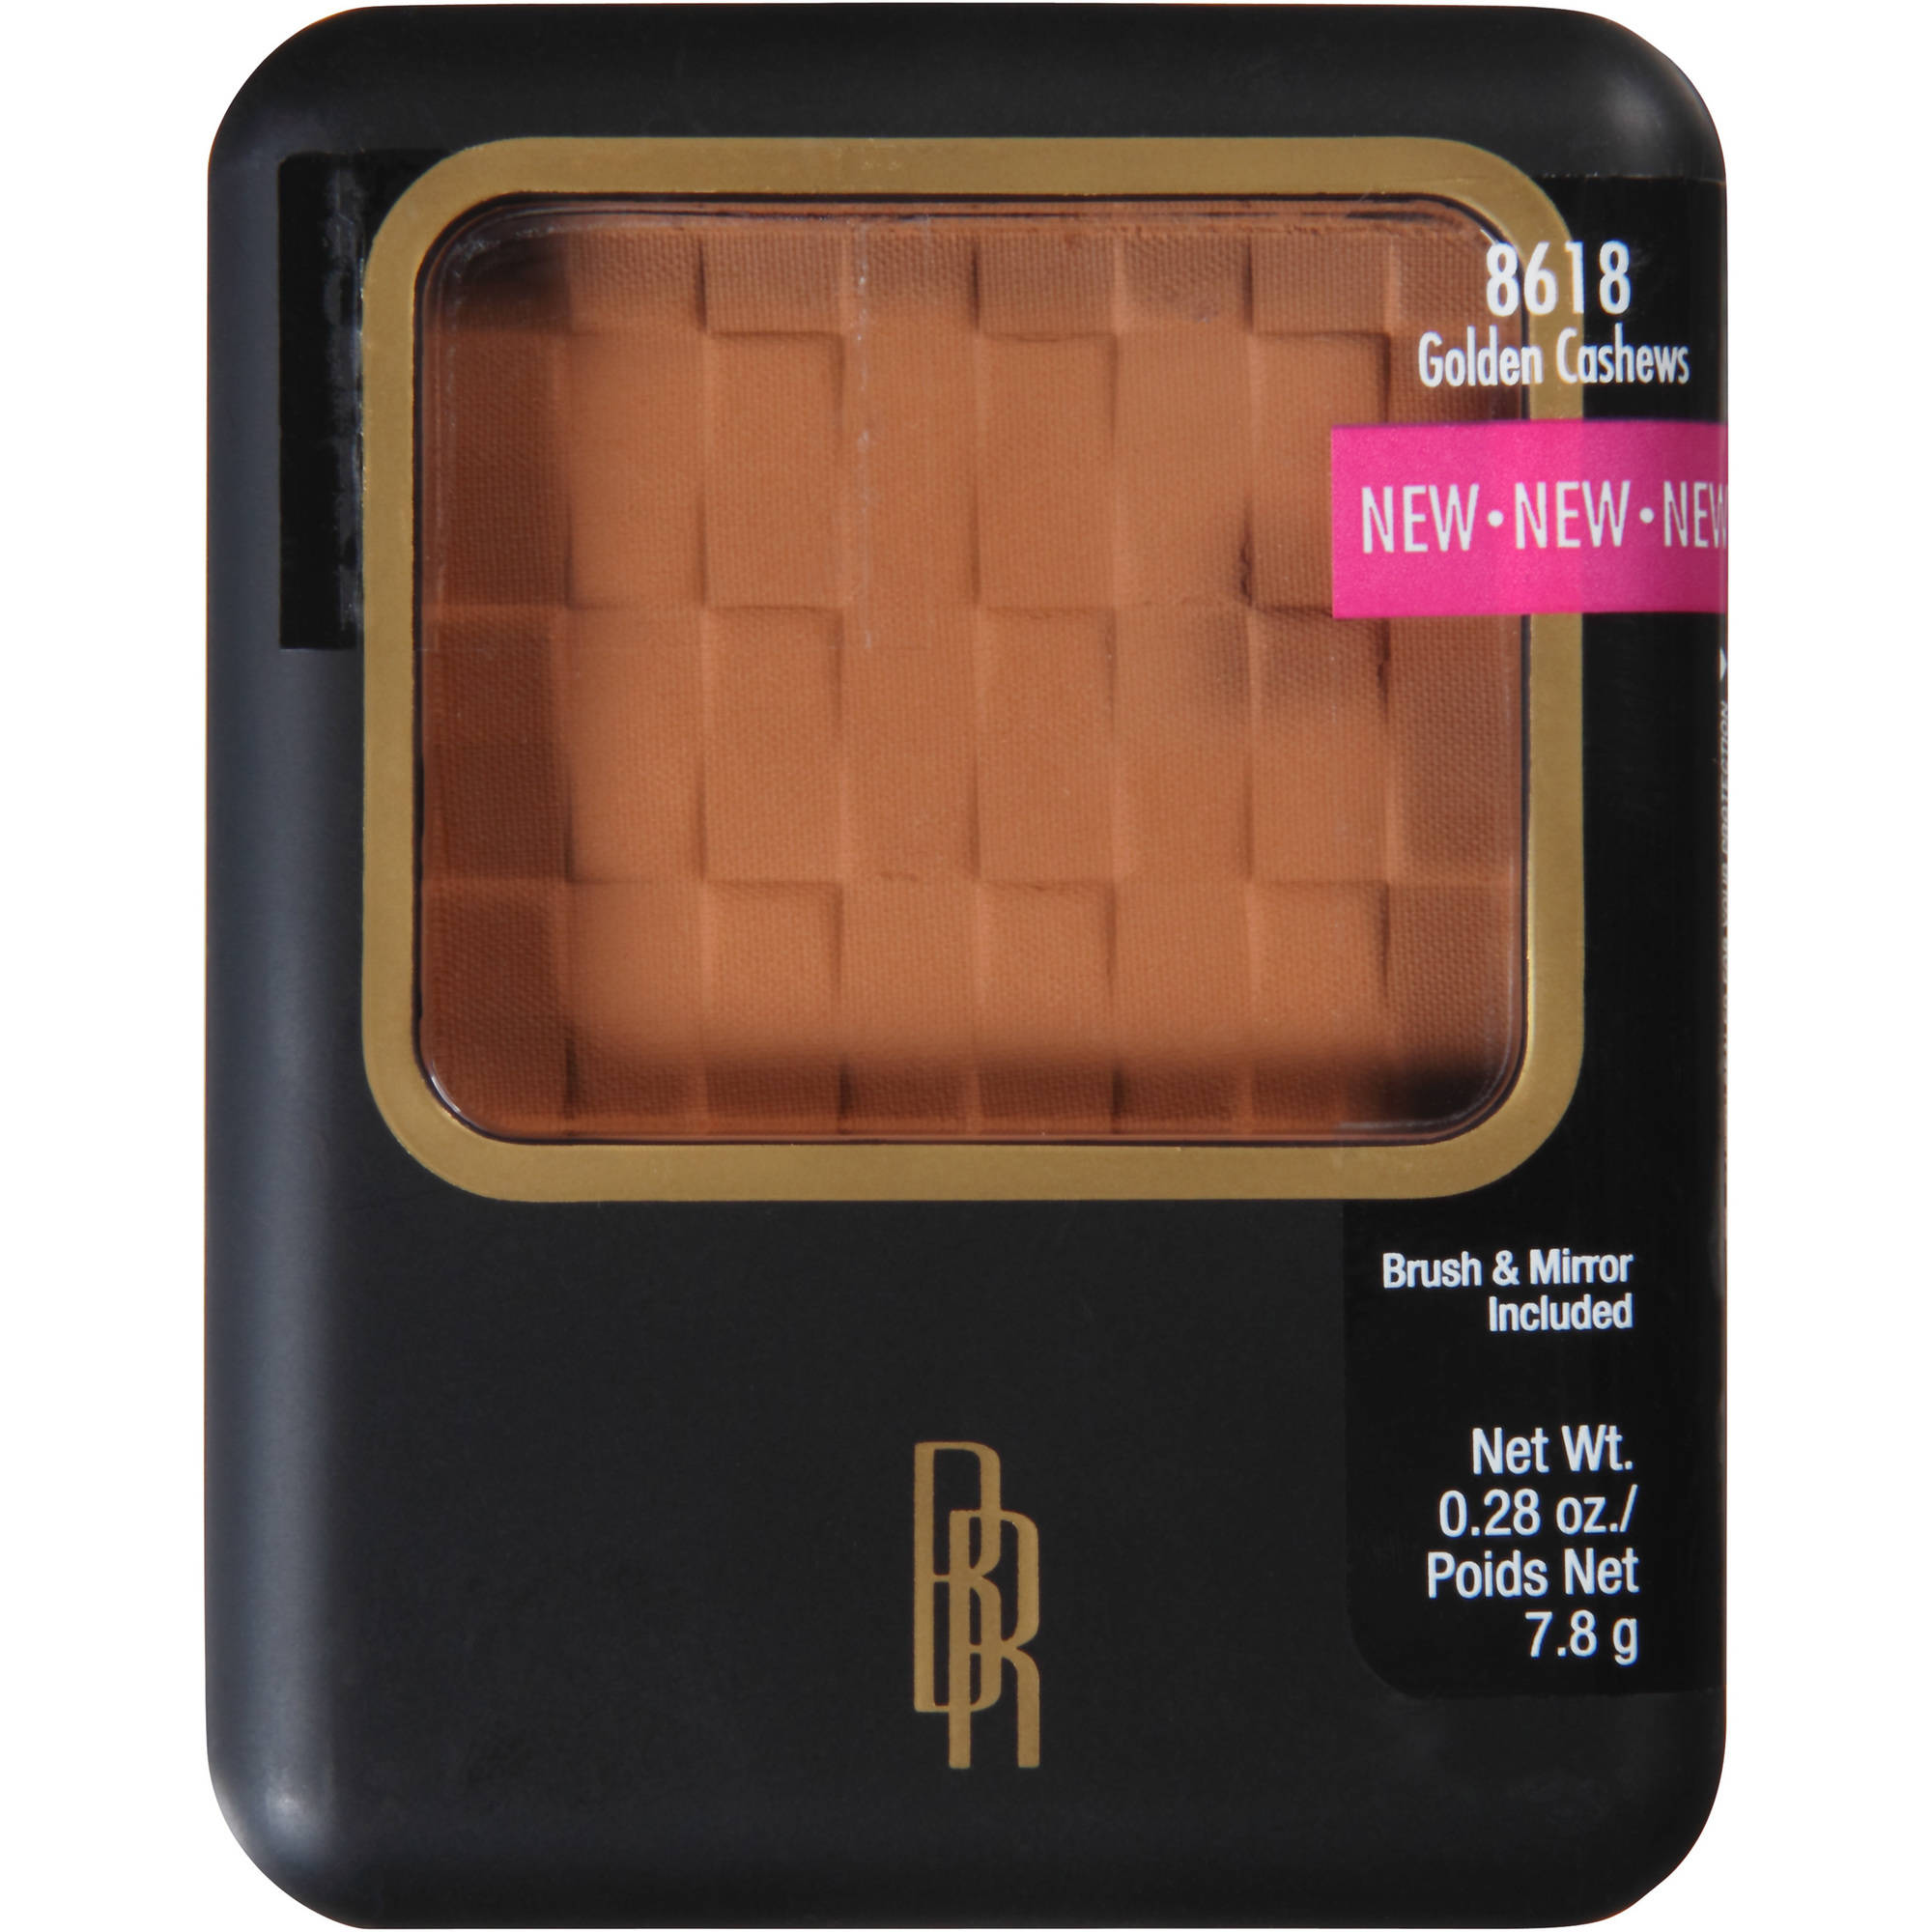 Black Radiance Pressed Powder, 8618 Golden Cashews, 0.28 oz